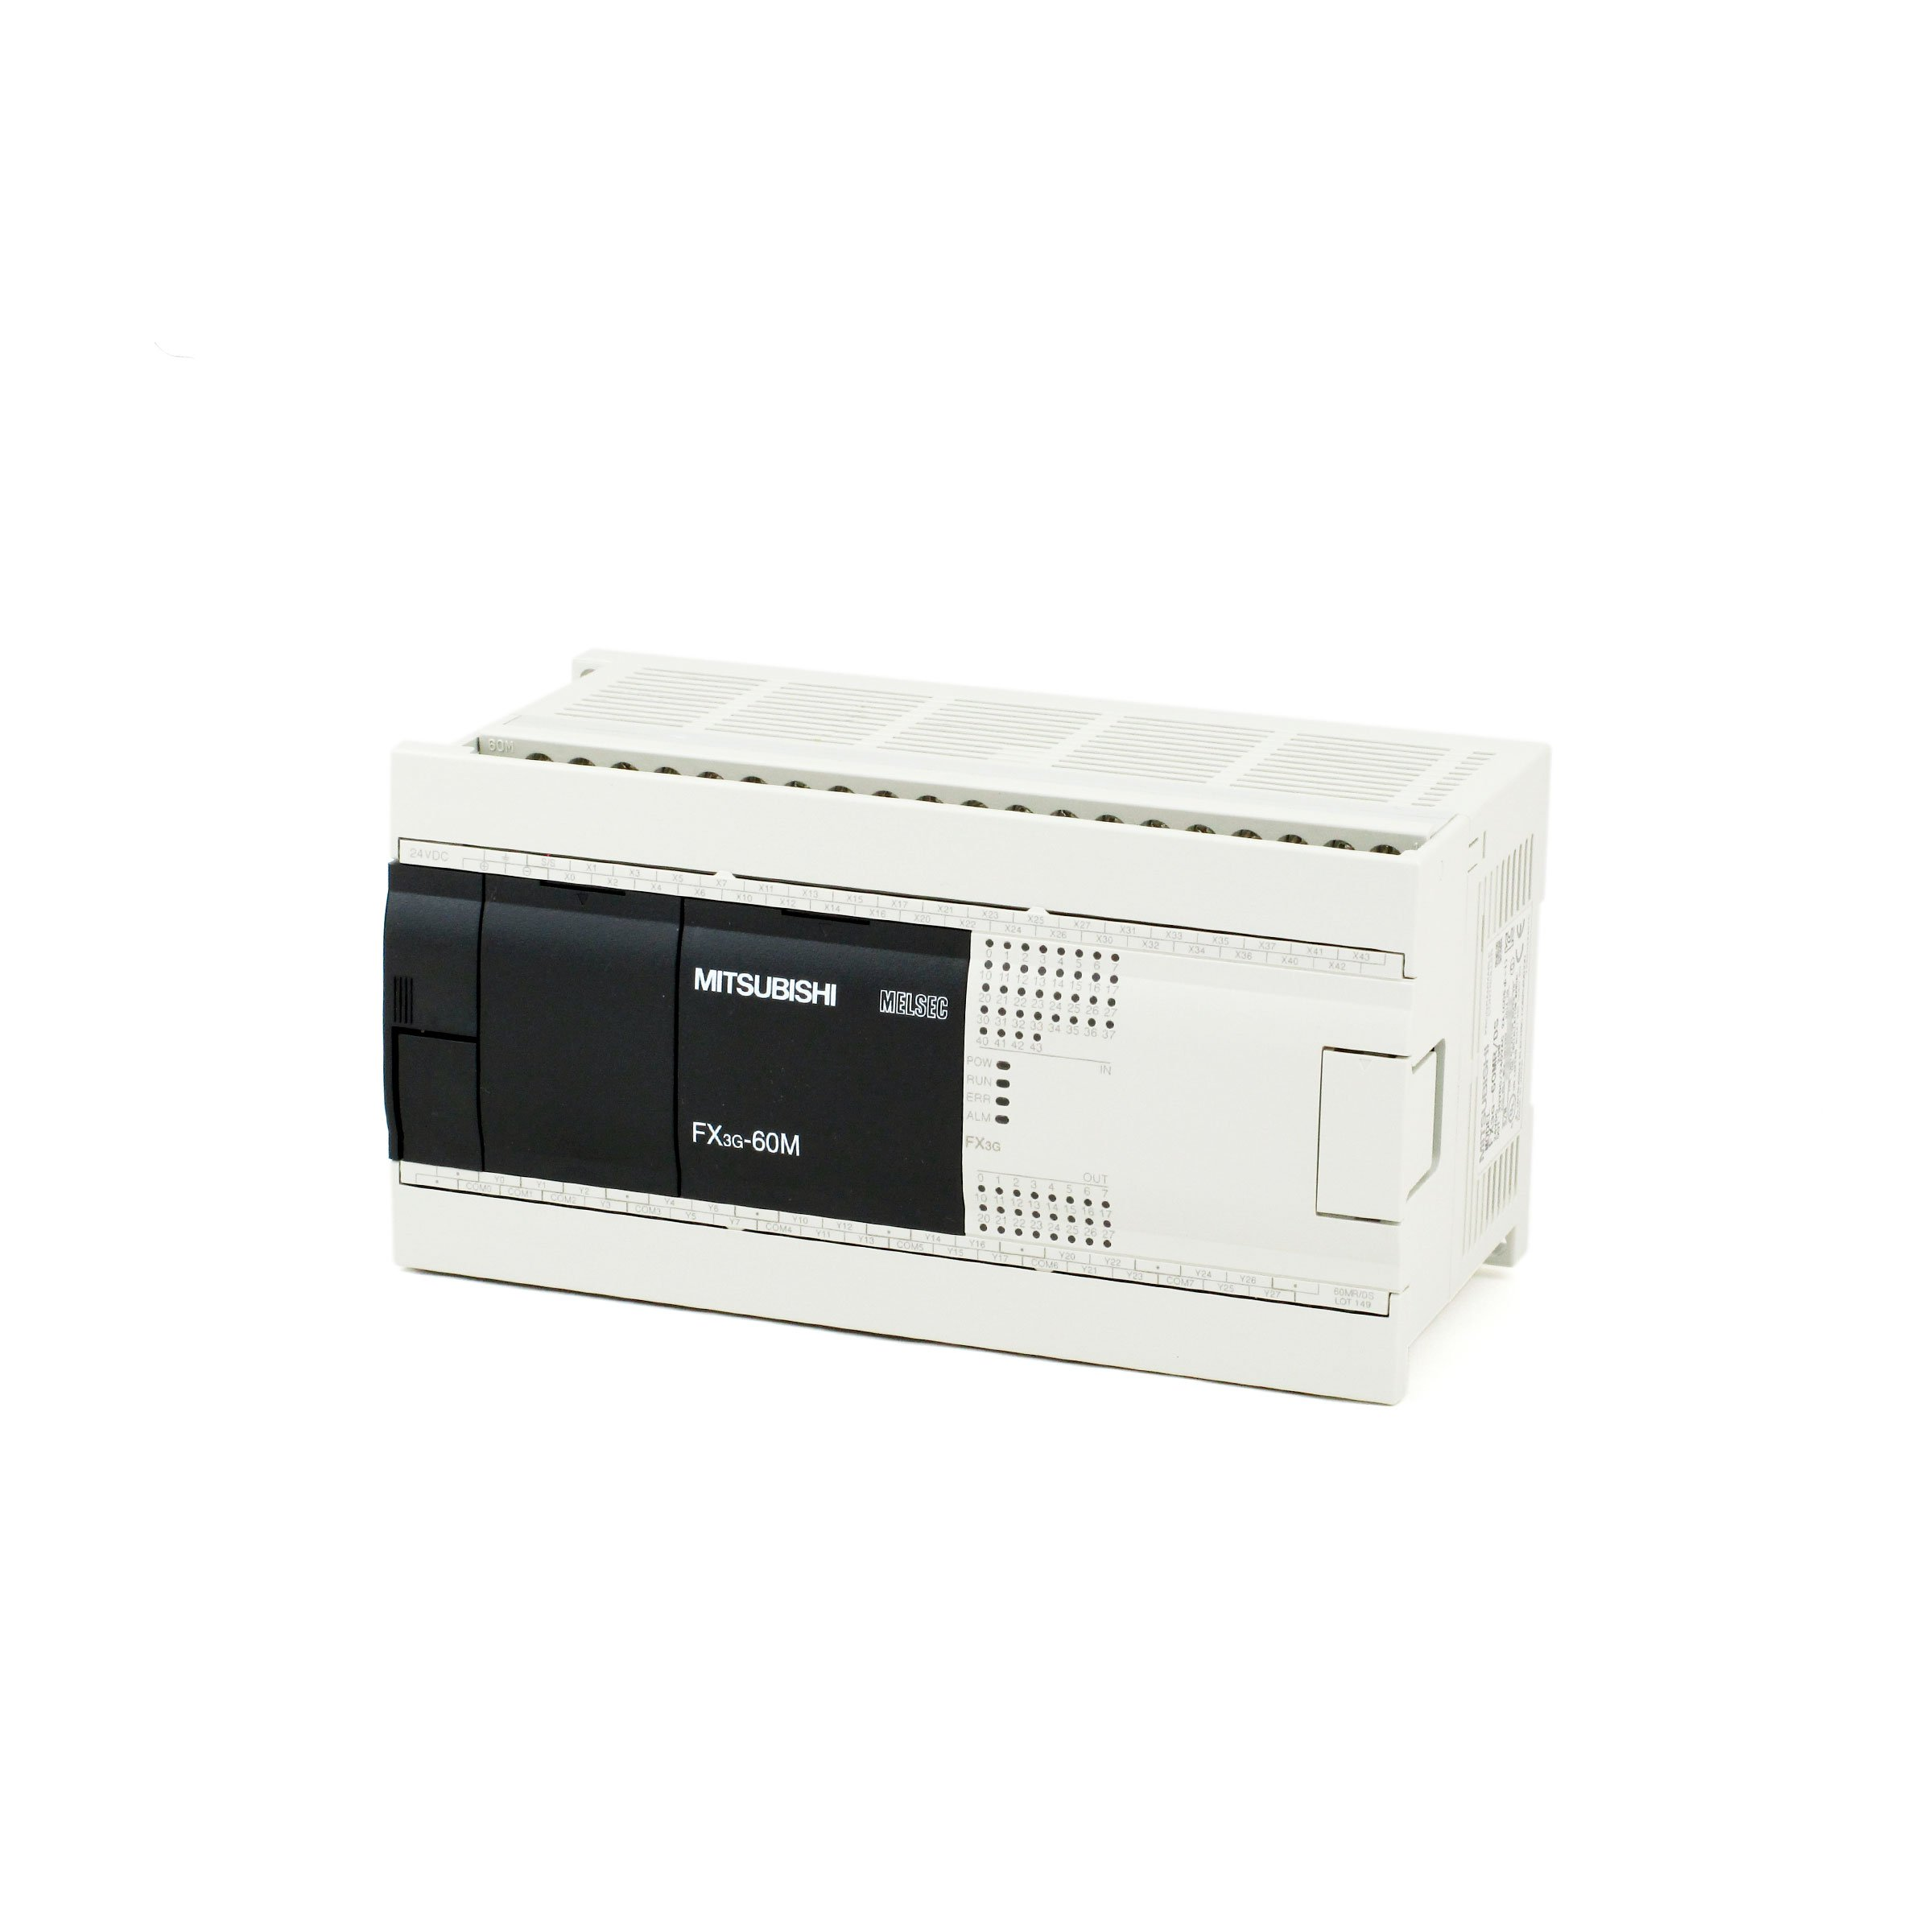 MITSUBISHI ELECTRIC FX3G-60MT/ESS Programmable controller Main Units with 60 I/O (Standerd Model) (Source type) NN